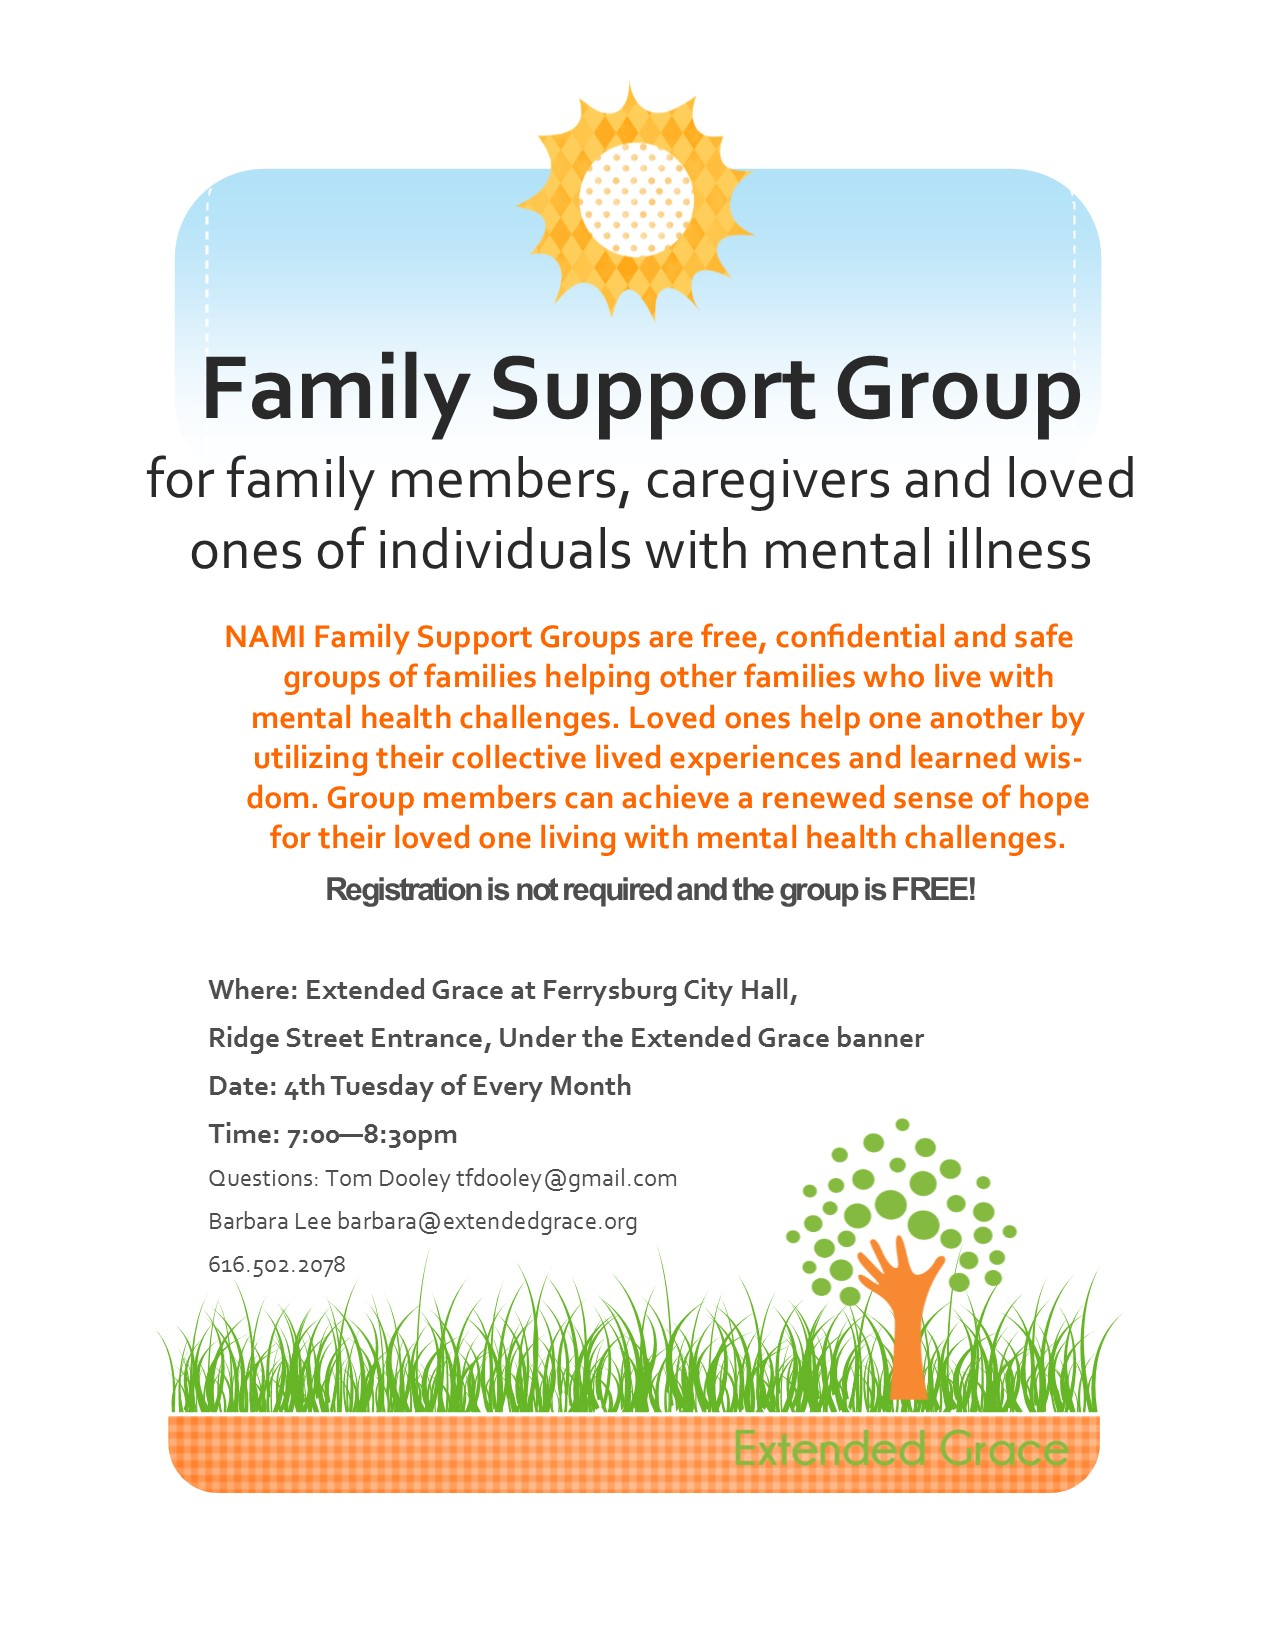 Family Support Group — Extended Grace